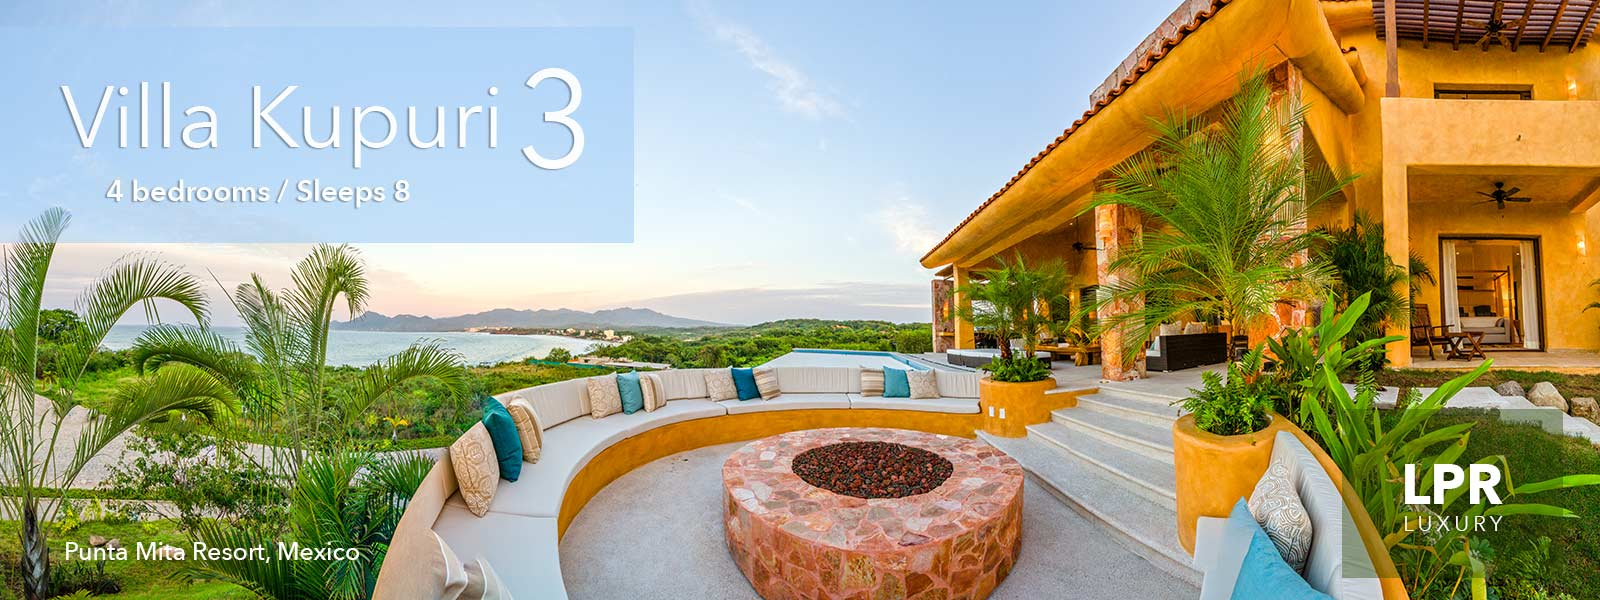 Villa Kupuri 3 - Luxury Real Estate at Kupuri inside the exclusive Punta Mita Resort